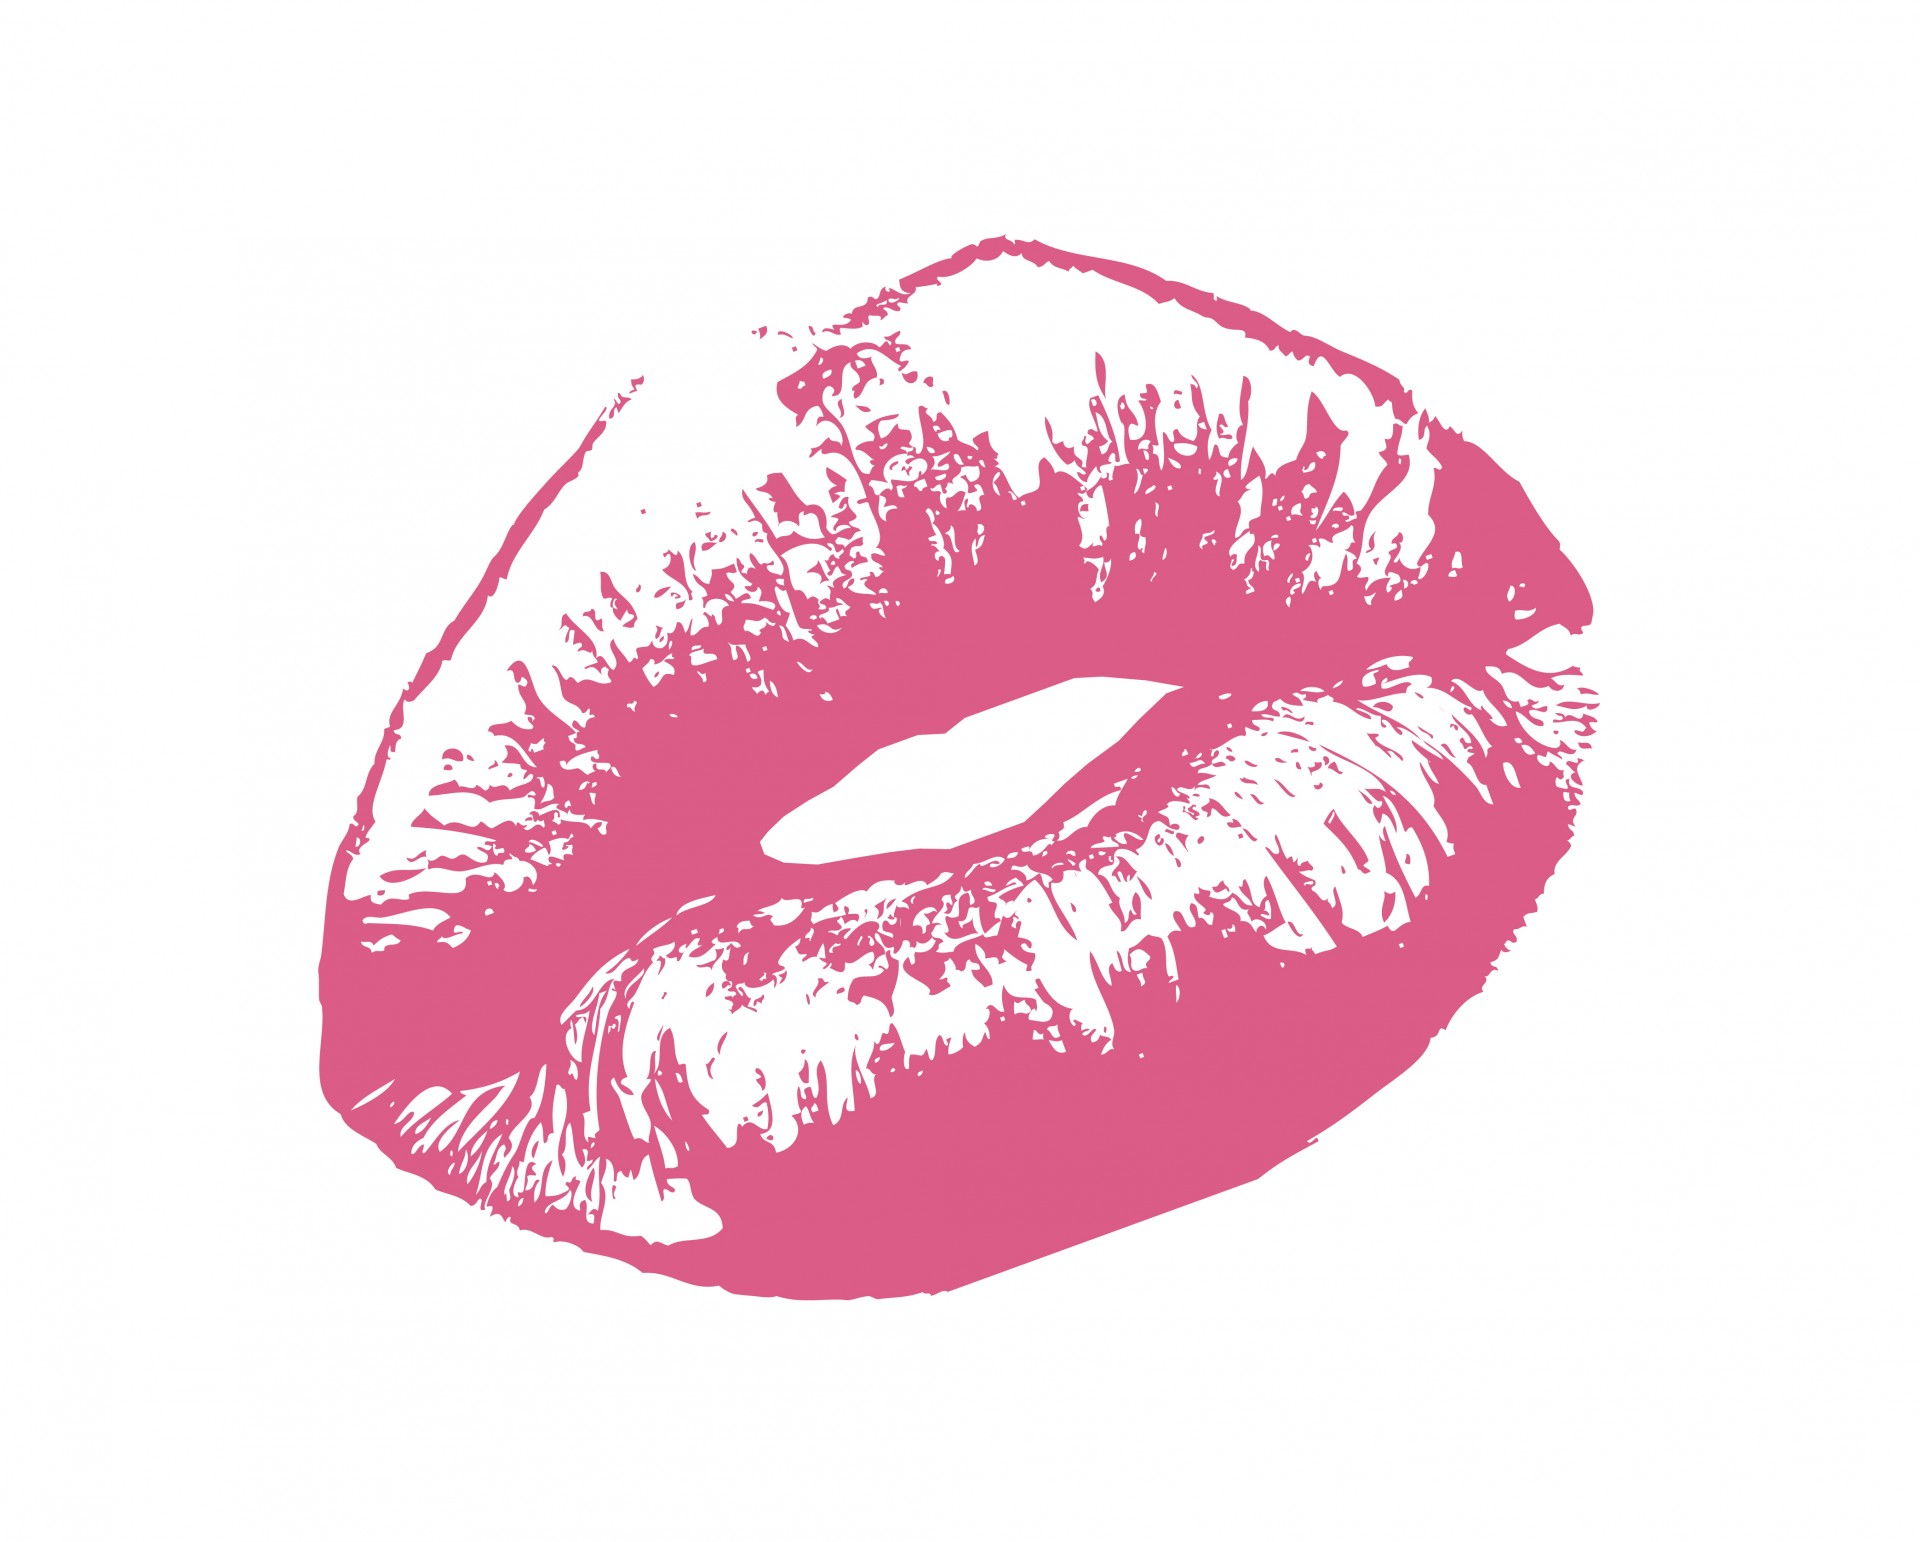 lips-of-woman-clipart.jpg